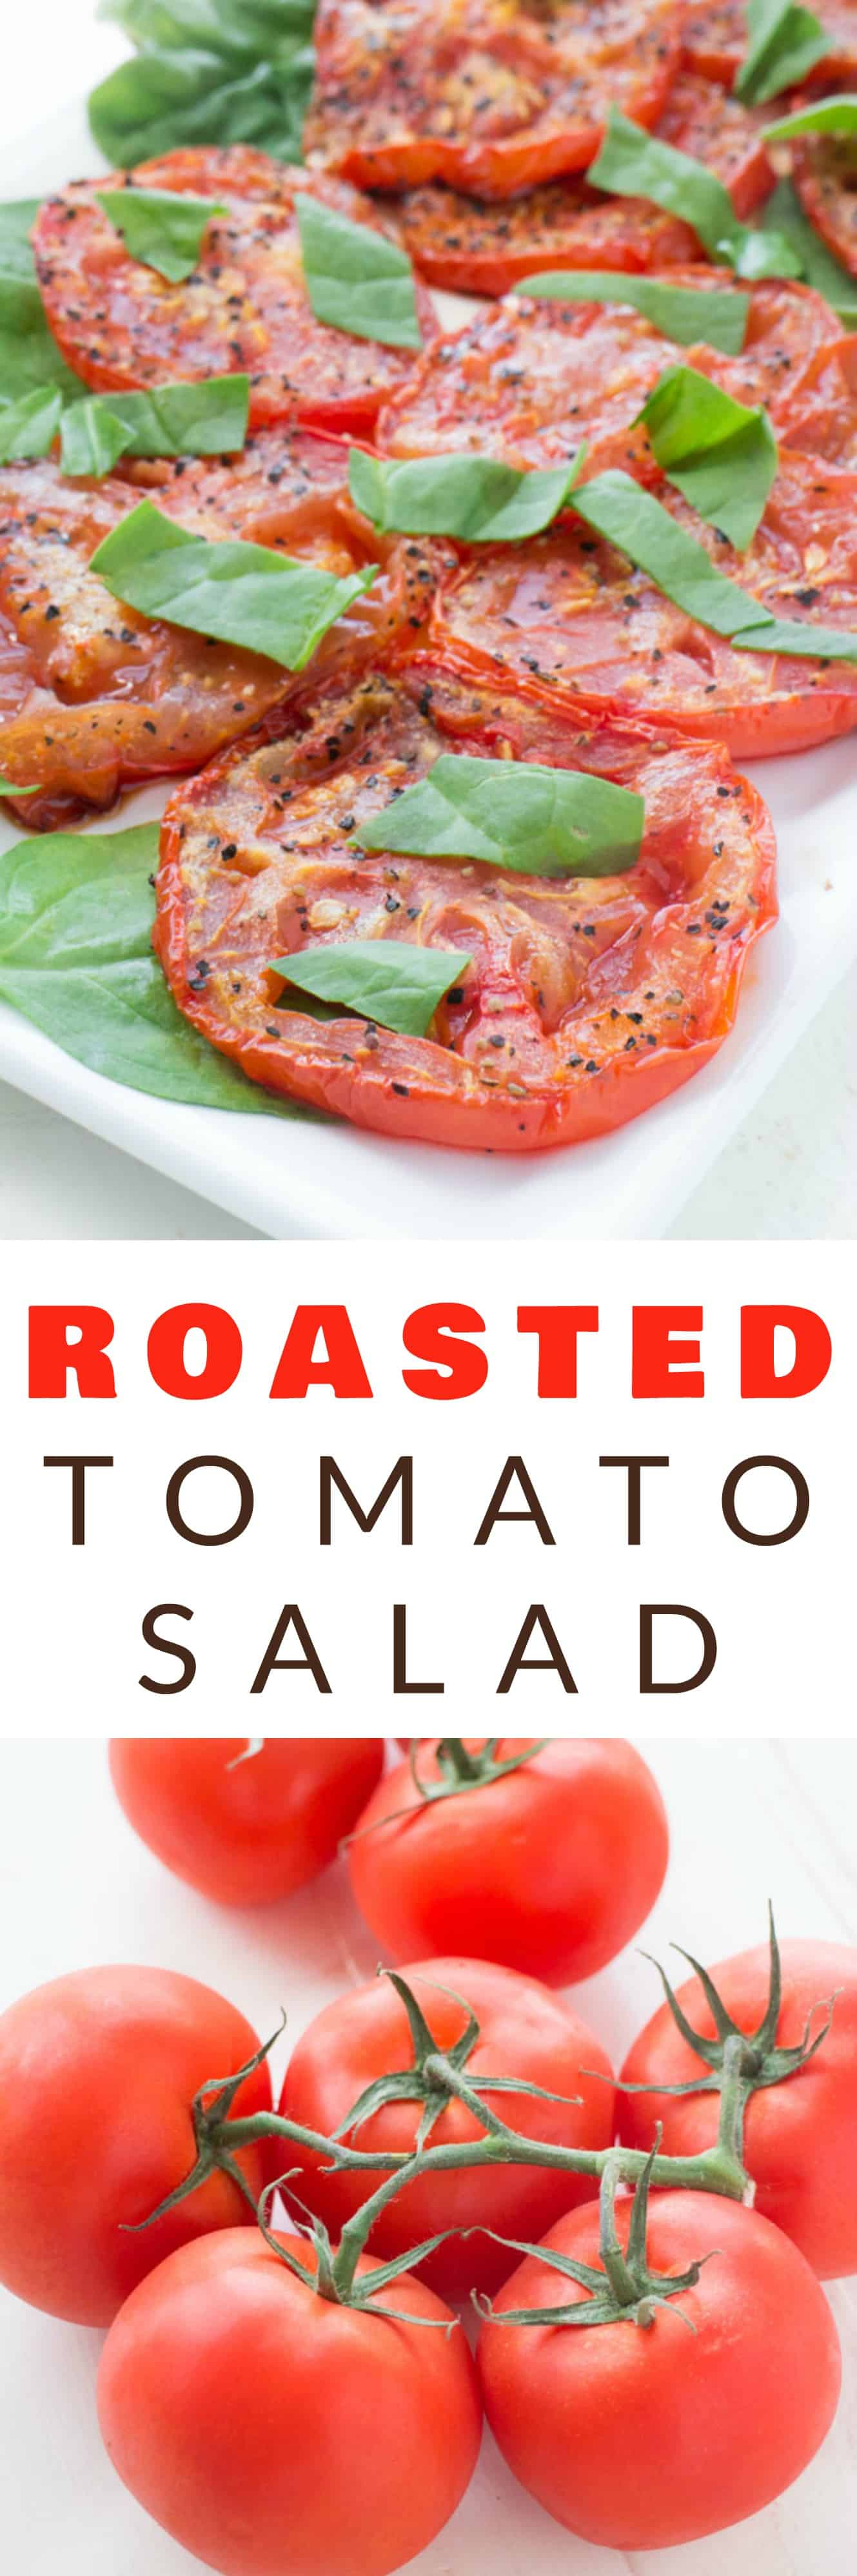 HEALTHY, SIMPLE Roasted Tomato Salad recipe for fresh Summer tomatoes!  Fresh tomatoes are roasted with olive oil for 25 minutes to create a delicious salad!  Serve as a EASY salad, side dish or appetizer! You can use any type of tomatoes - including roma, cherry and heirloom!